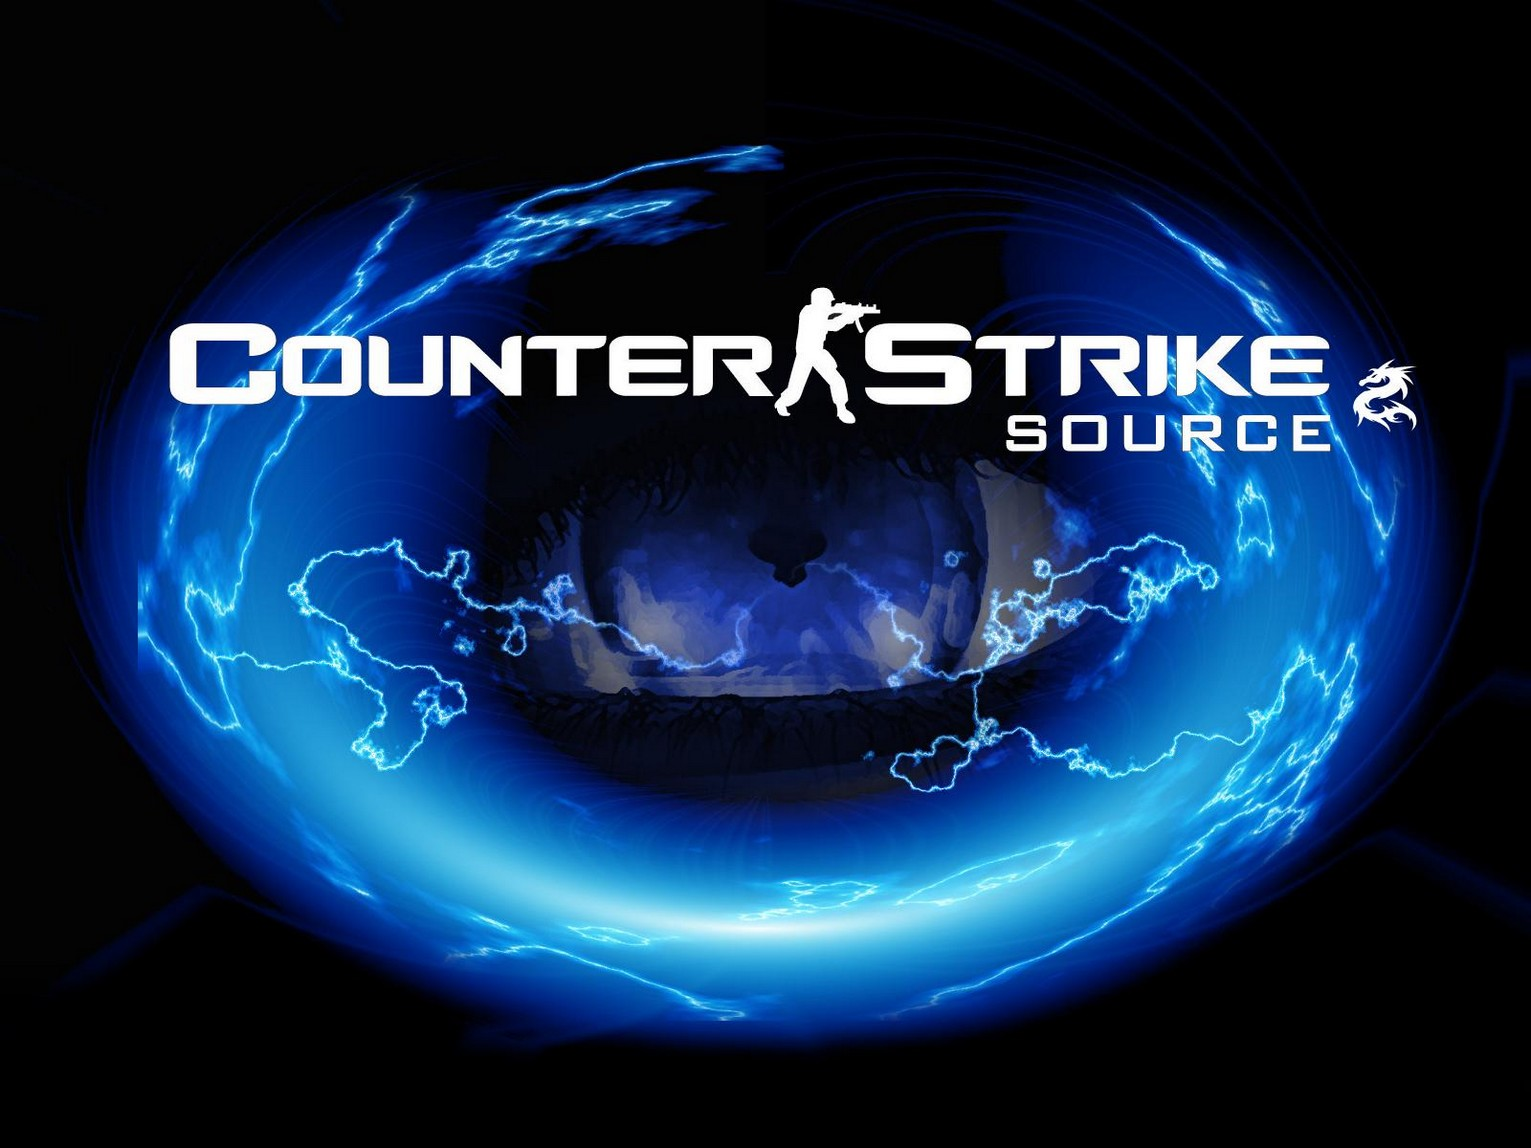 http://1.bp.blogspot.com/-n2UqNM8jq4U/UAObODVmEBI/AAAAAAAABE8/WuAt8n0KJa4/s1600/counter+strike+source+wallpaper+background+blue+eyes+fps+first+person+shooter+3.jpg